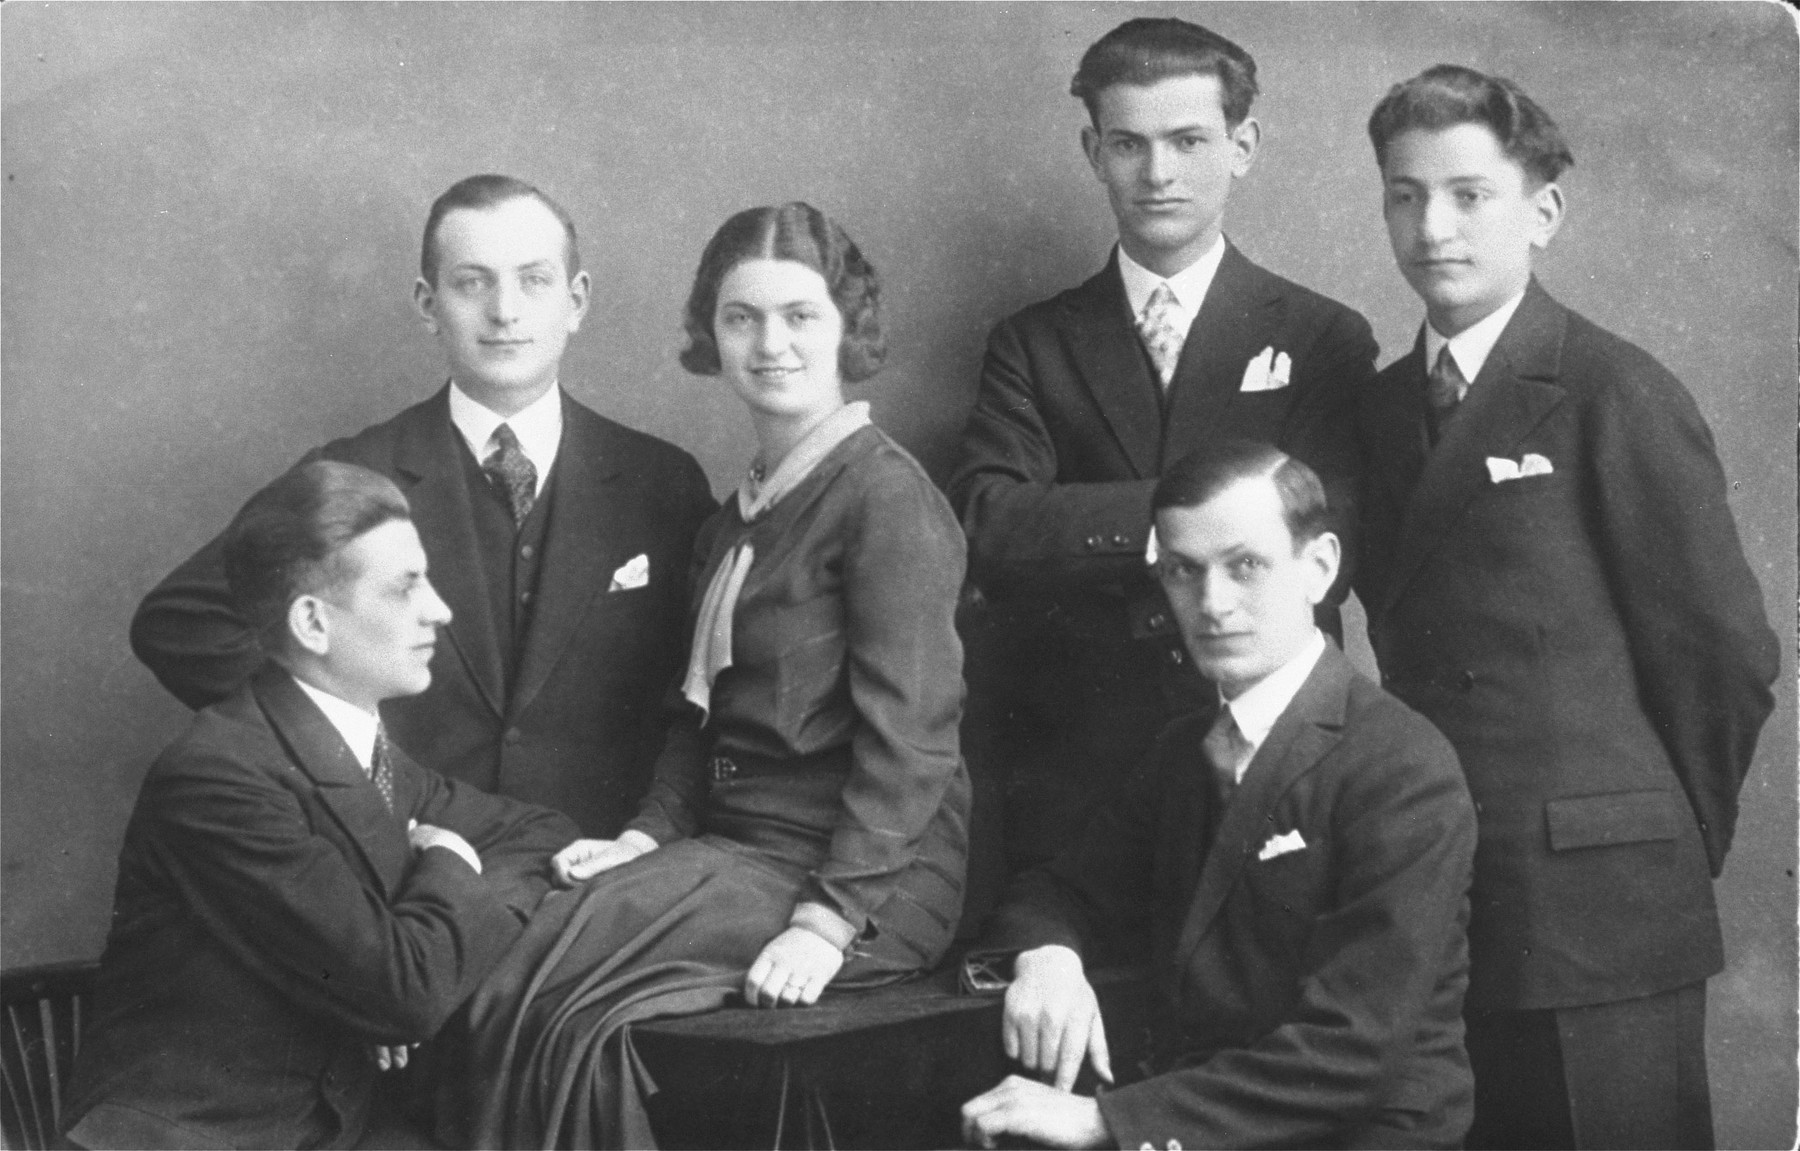 Group portrait of six Jewish siblings in Pozega, Croatia.  Pictured are the children of Julius and Rosa (Gruenwald) Klein.  From left to right are: Zdenko (seated) and Zlatan Klein (standing), Blanka (Klein) Kupfermann, Milan (seated), Dragan (standing behind Milan), and Bruno Klein.  All of the men perished in the Holocaust.